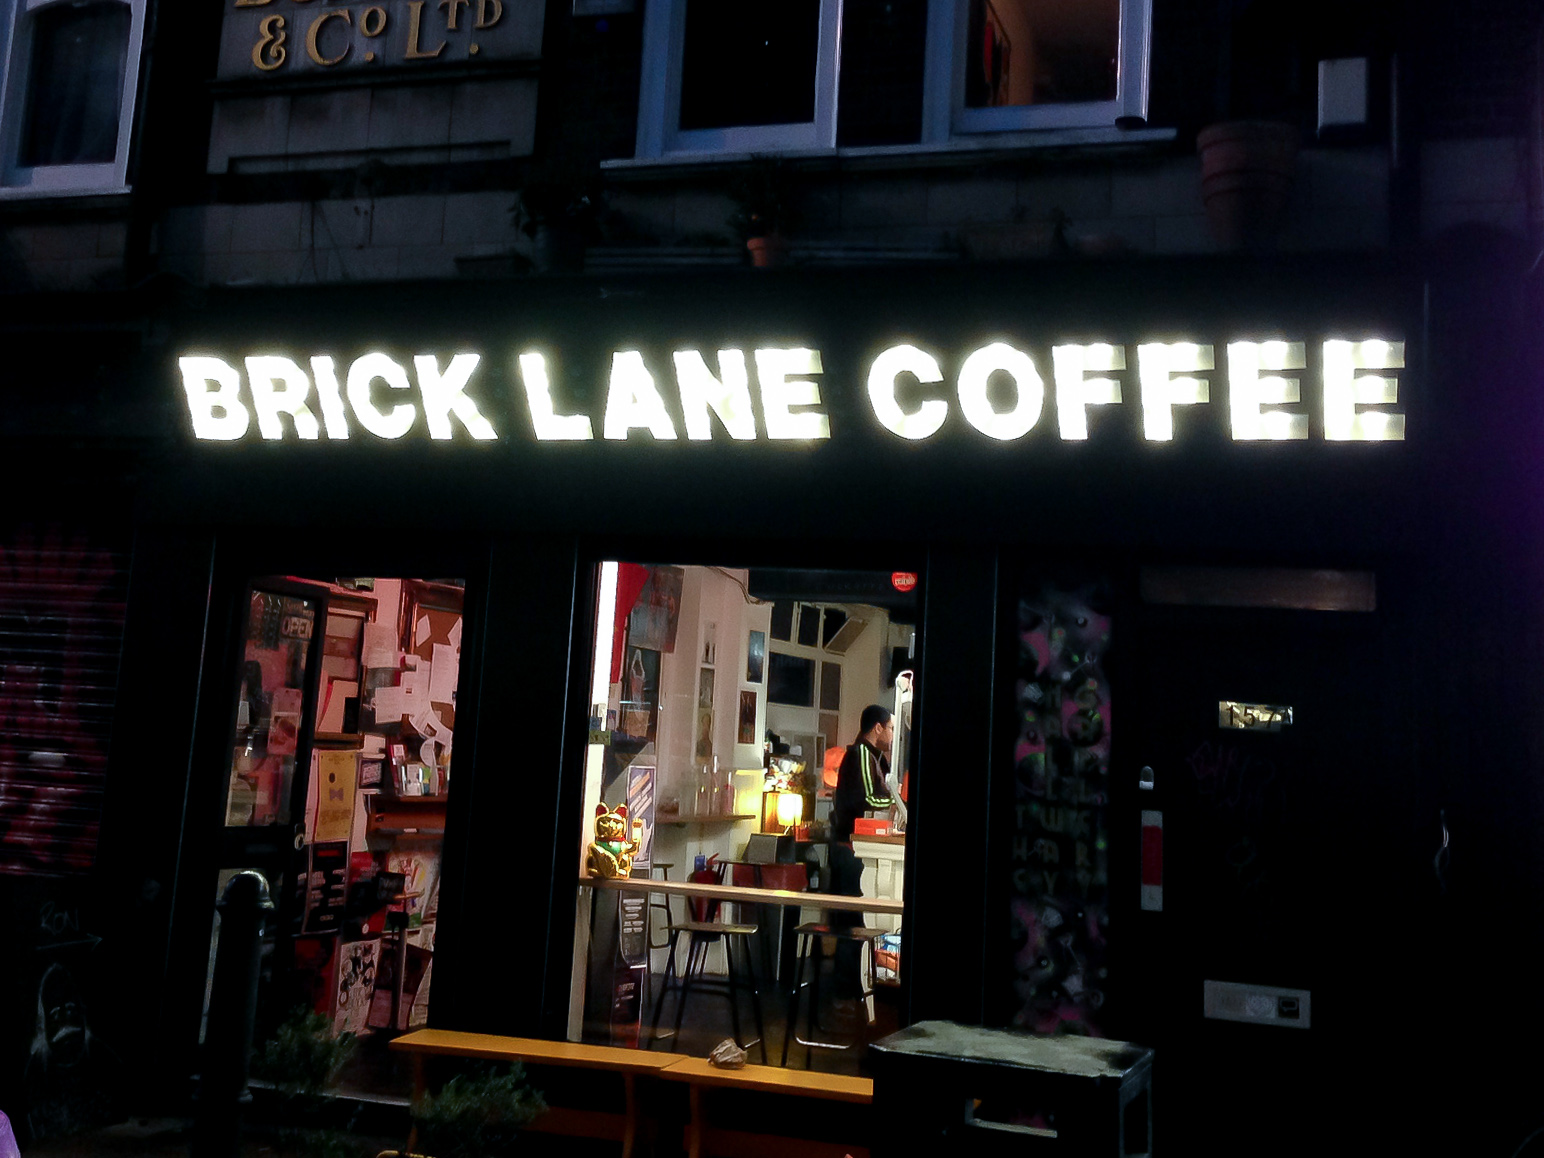 Brick Lane Coffee in London. Photo by alphacityguides.